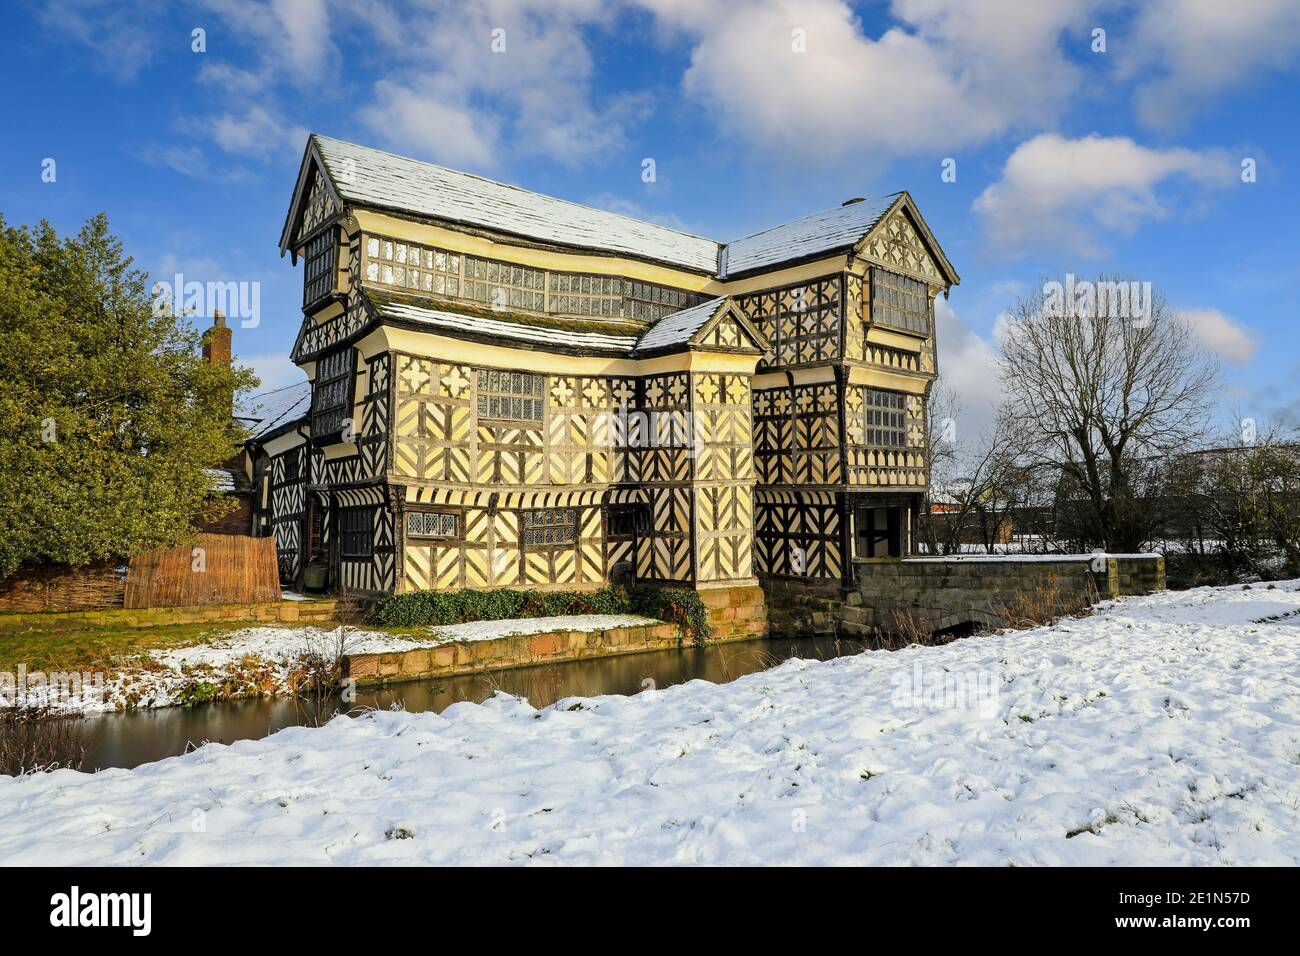 little-moreton-hall-cheshire-moated-15th-century-half-timbered-manor-house-in-the-snow-winter-2020-december-photo-taken-from-public-footpath-2E1N57D.jpg